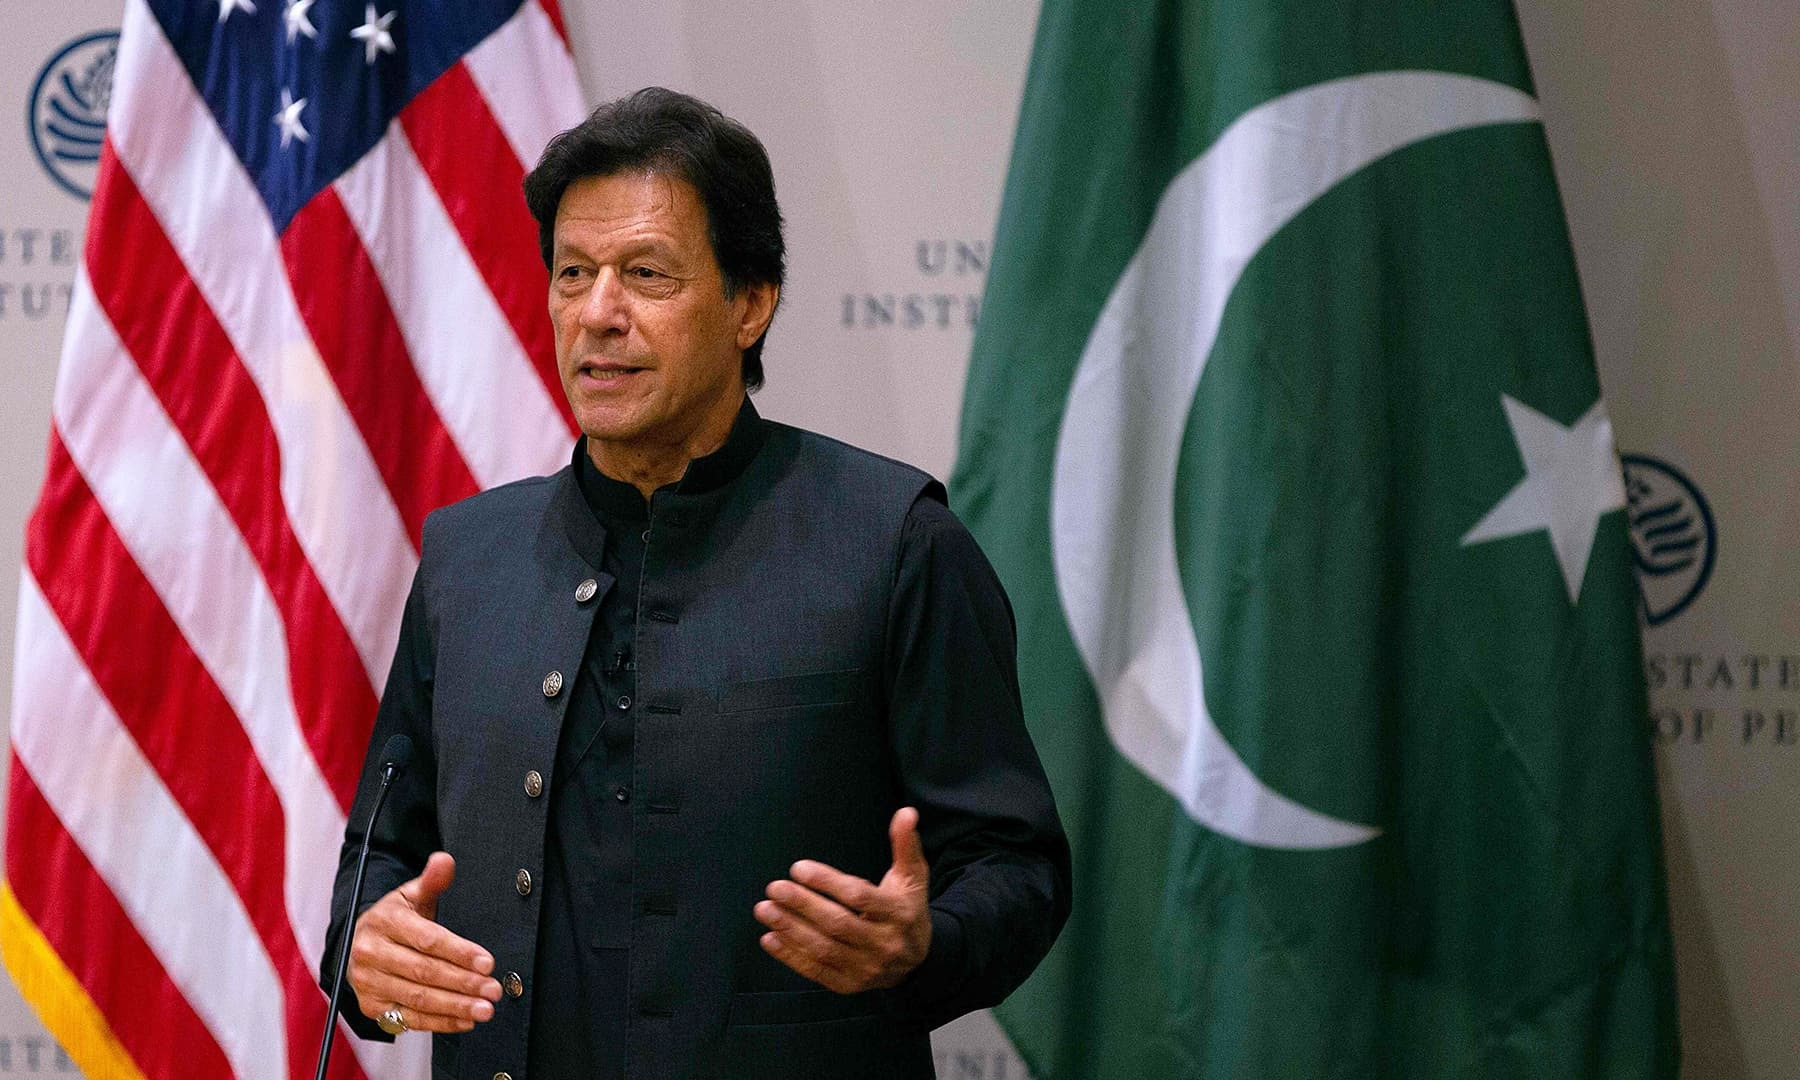 Imran Khan in Washington: He came, he saw, he conquered